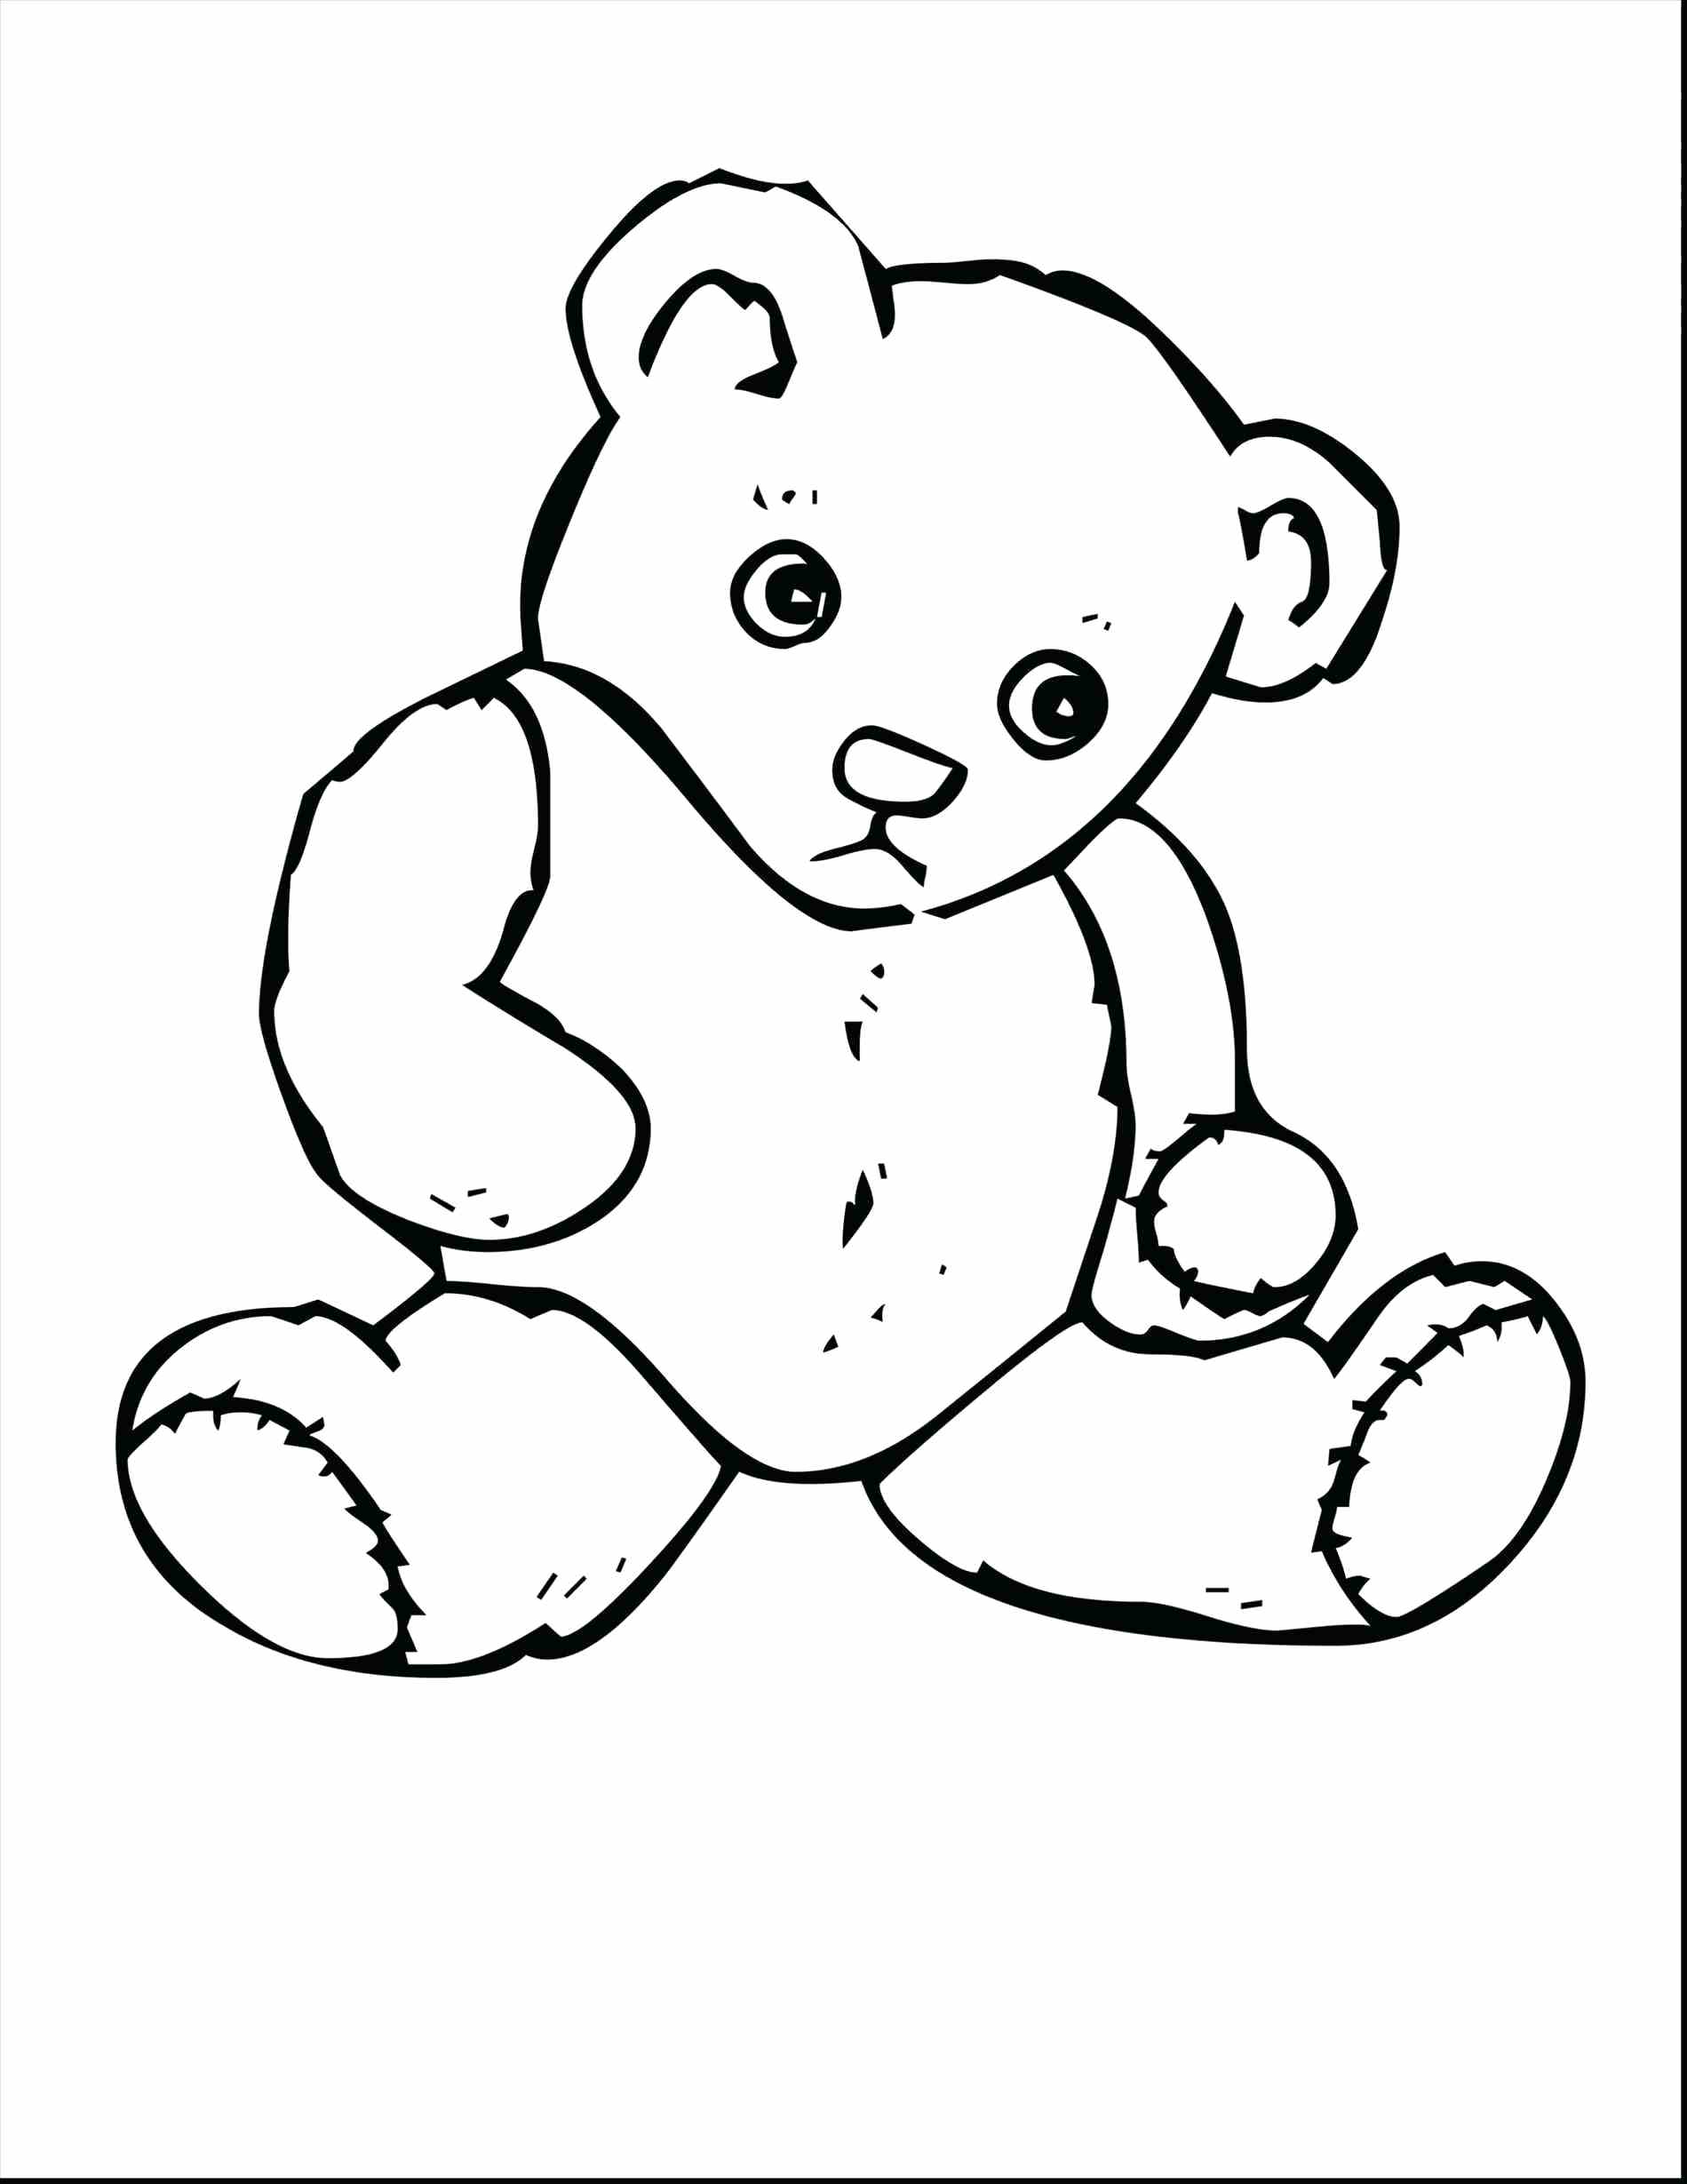 Teddy Bear Holding A Heart Drawing at GetDrawings.com | Free for ...